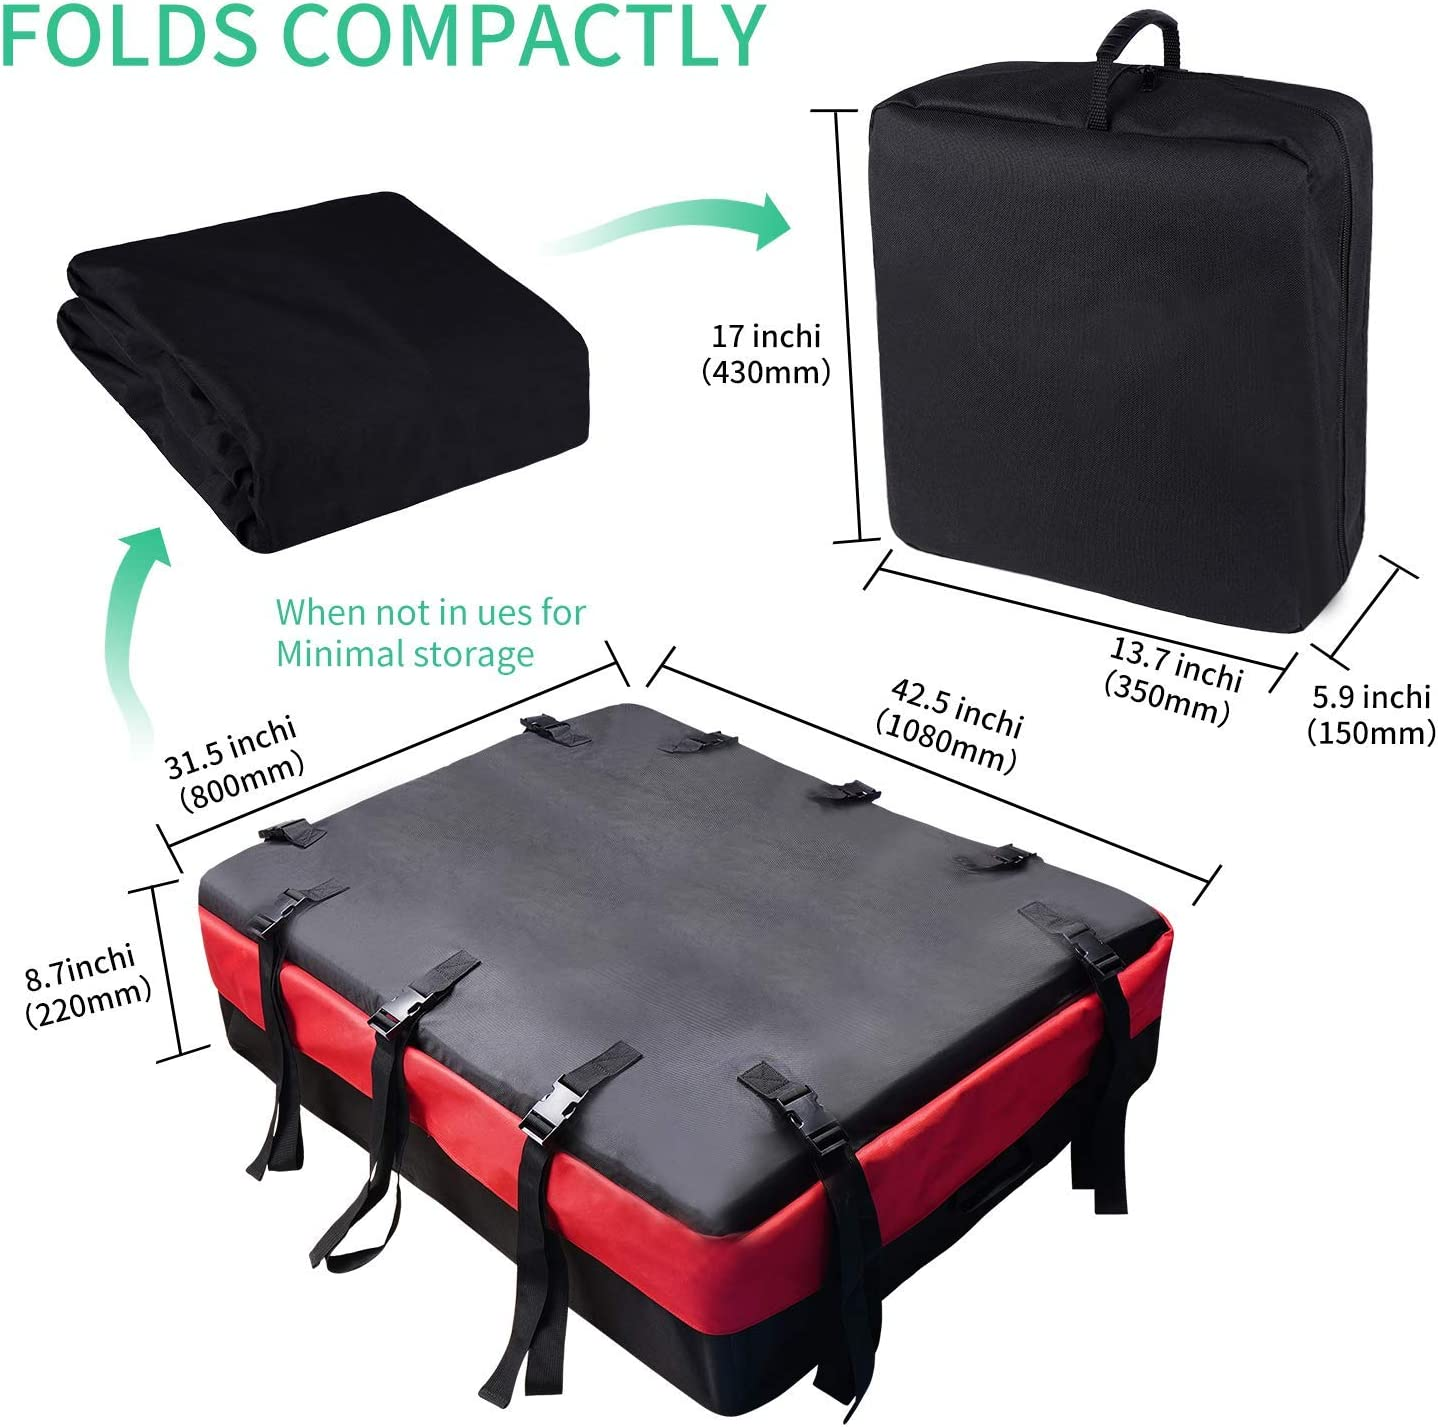 MHO+ALL Rooftop Cargo Carrier Bags Roof 8 cu ft Waterproof Luggage Car Top Carrier Heavy Duty Roof Bag with 10 Reinforced Straps Rainproof Zipper Fits All Cars /& Automobiles with or NO Roof Rack